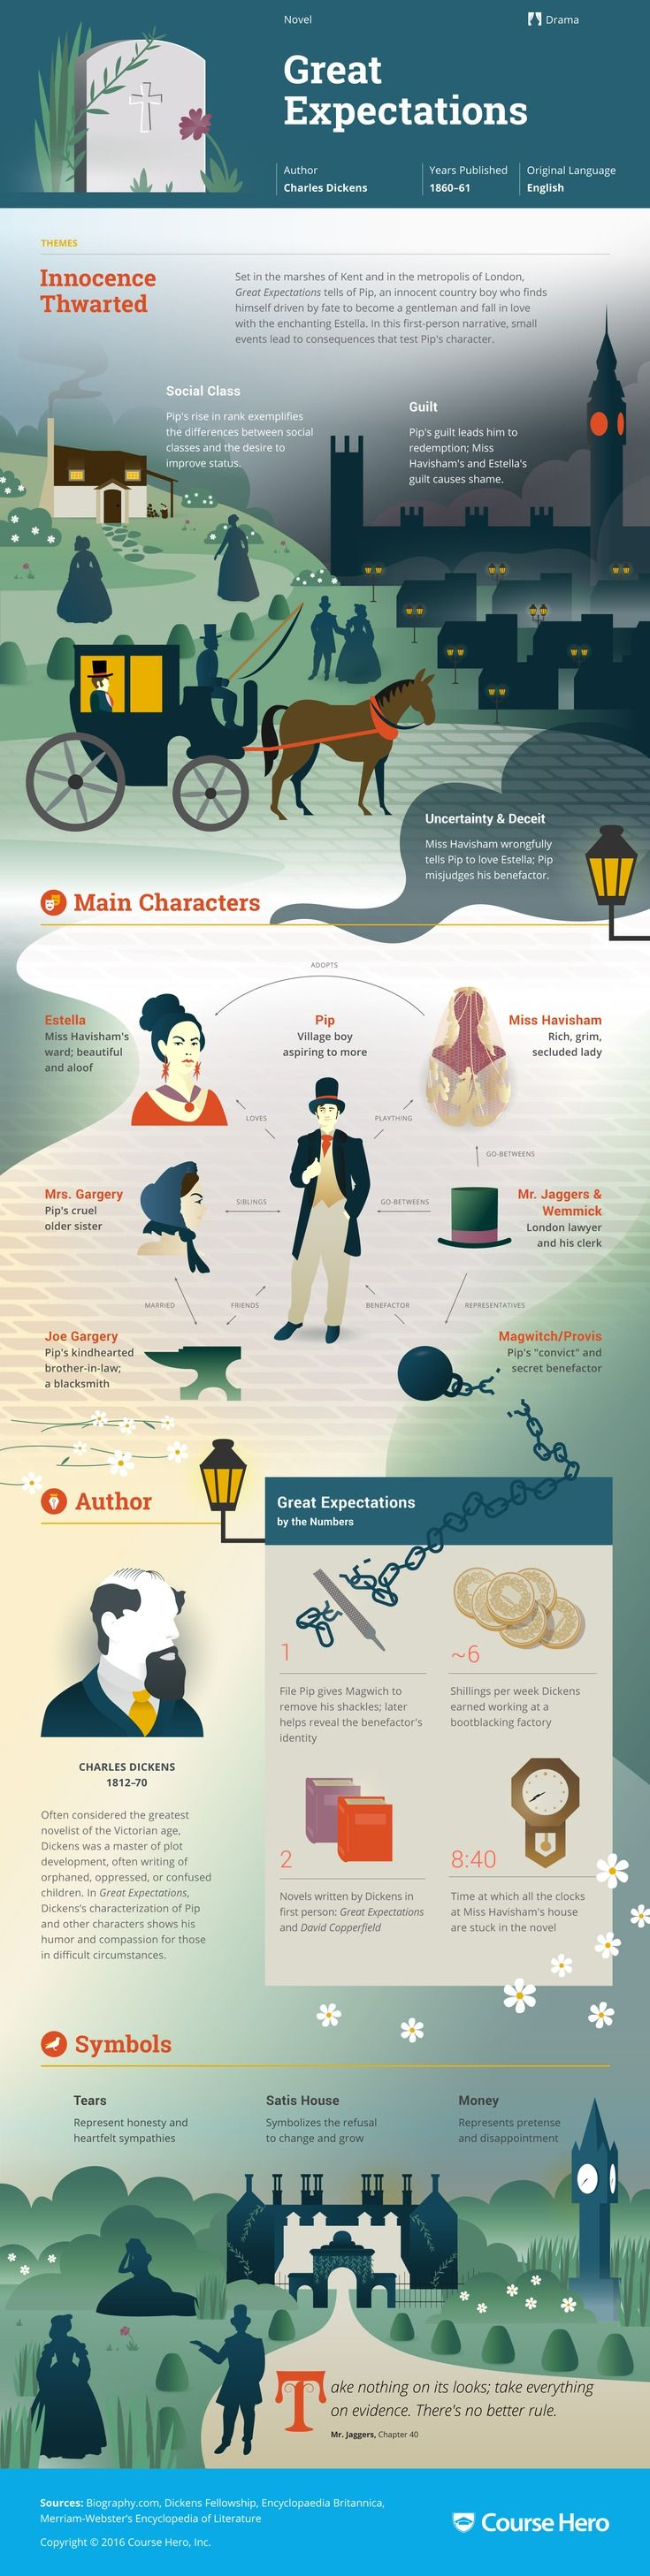 an analysis of the theme of love in charles dickens great expectations Grades-9-10 / study guide for great expectations / charles dickens' style in great expectations writing style in great expectations by charles dickens: styles & themes used summary of each chapter of great expectations.